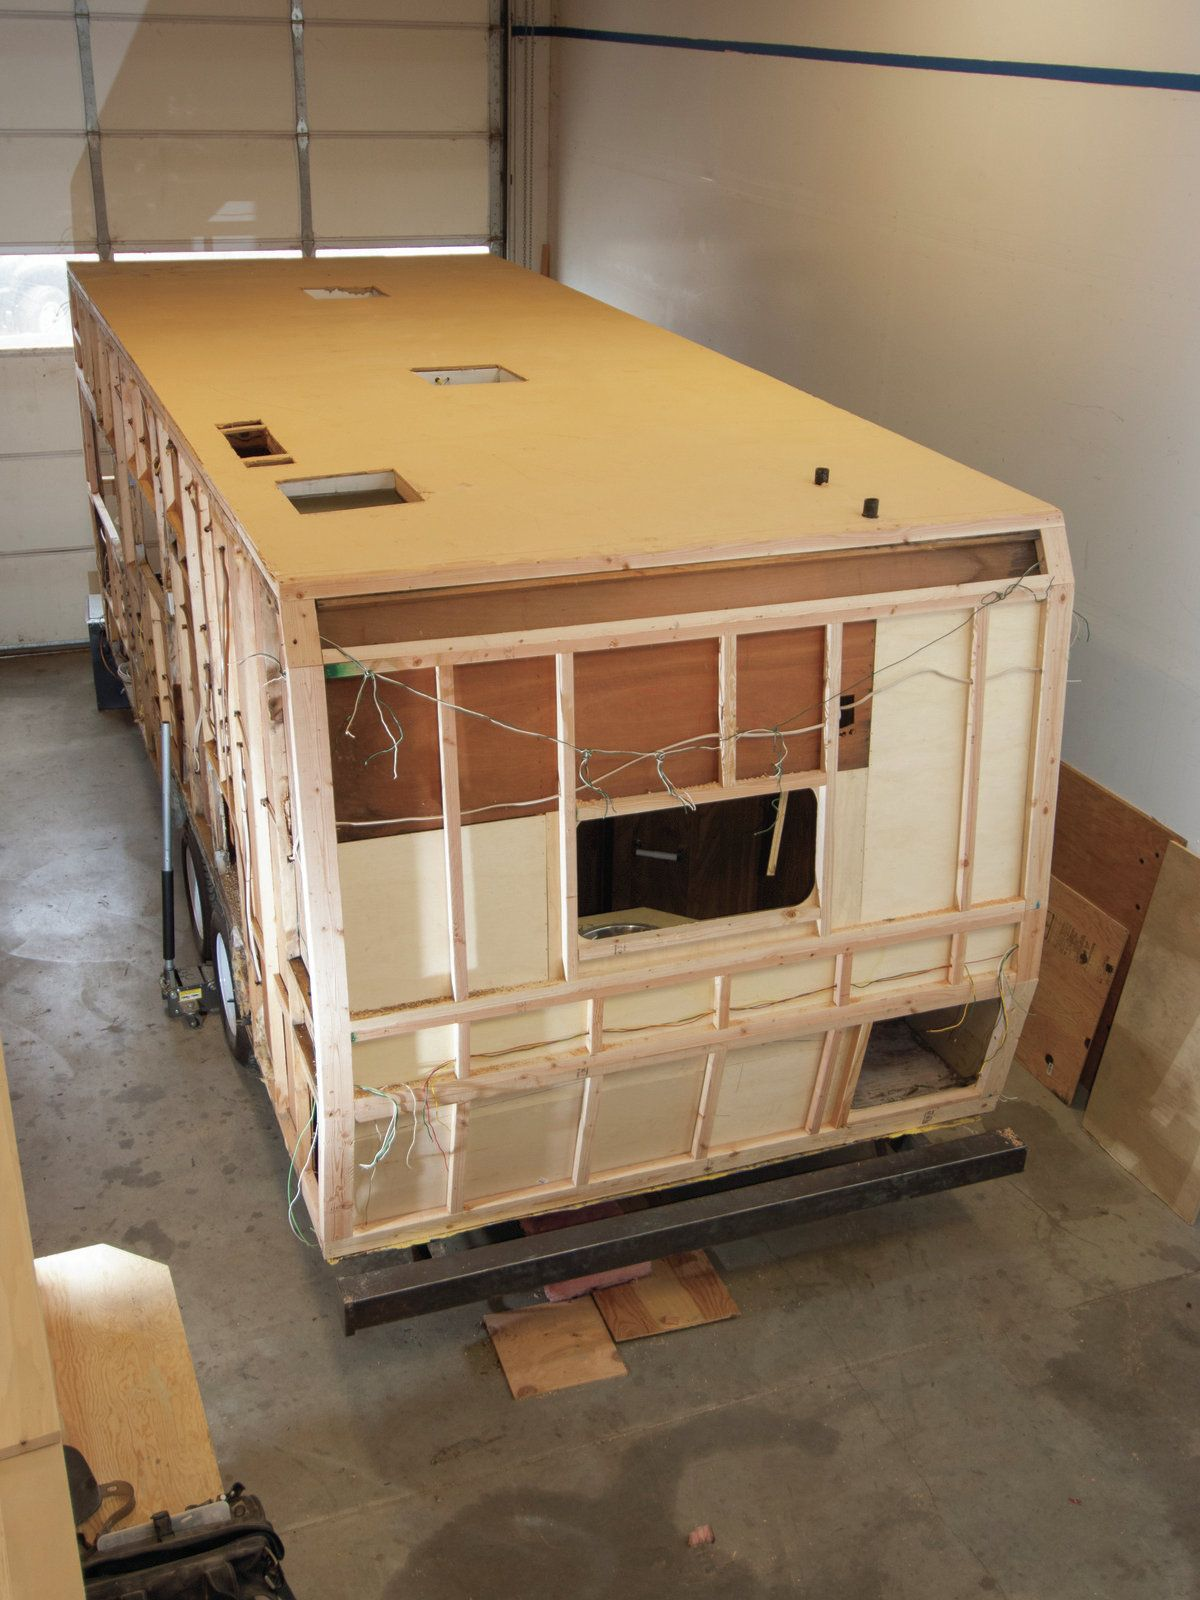 1978 terry travel trailer how to repair mobile home interior